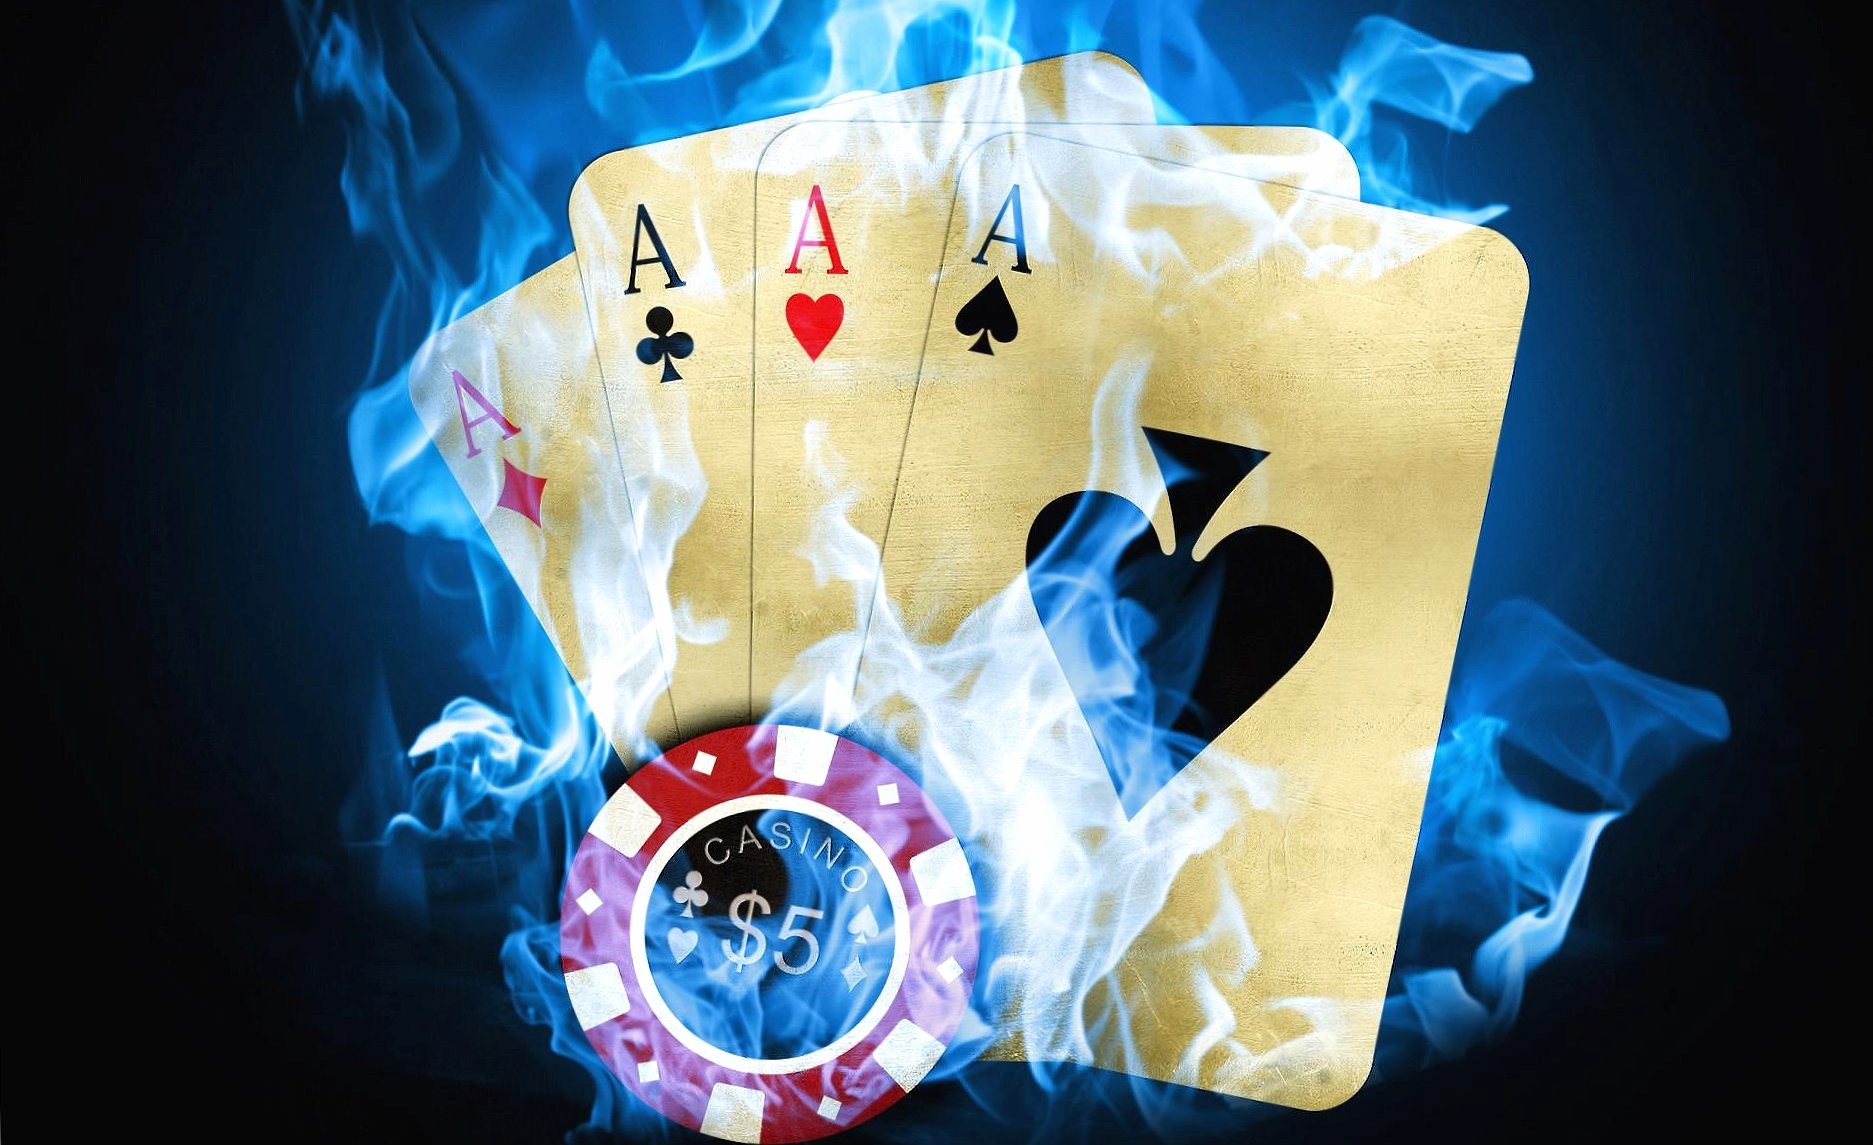 Four axes poker fiche casino digital wallpapers HD quality